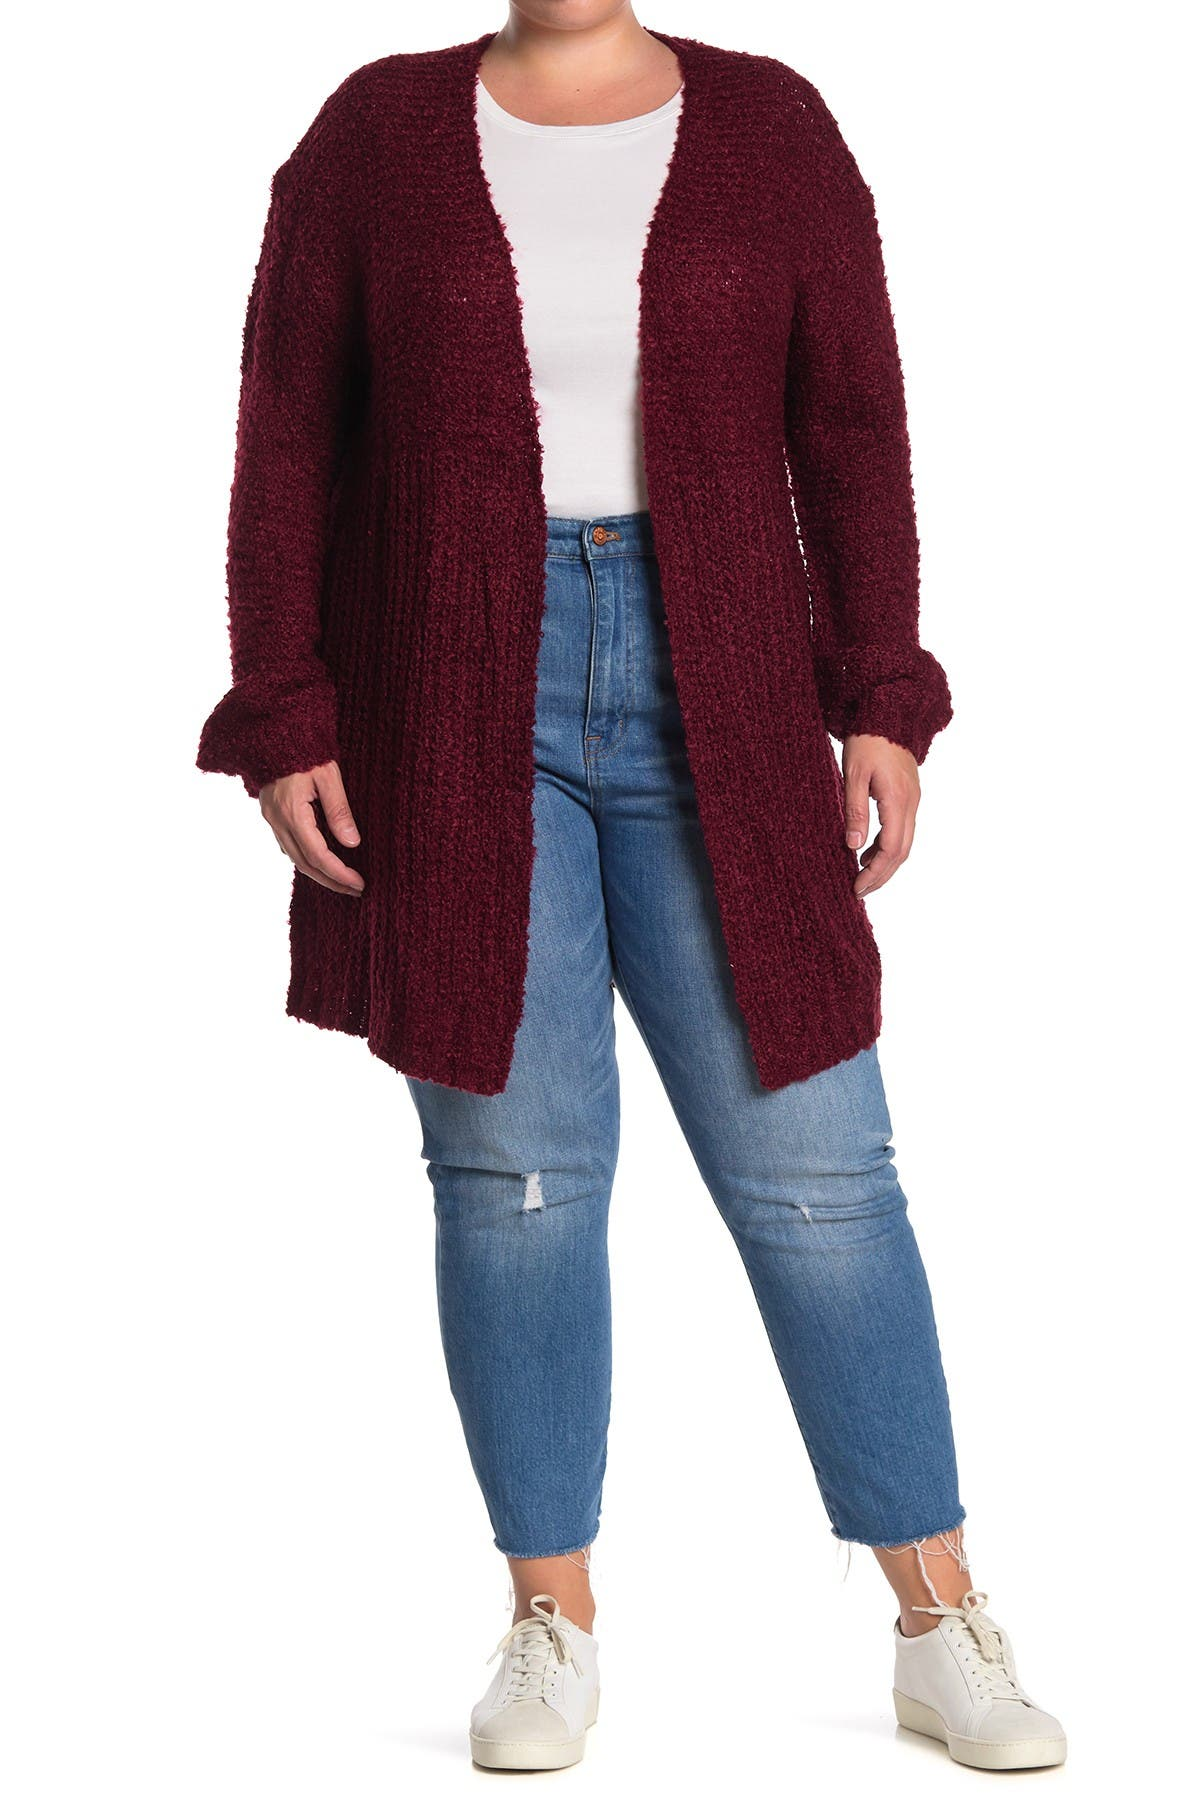 Image of STITCHDROP Mixed Stitch Boucle Open Front Cardigan